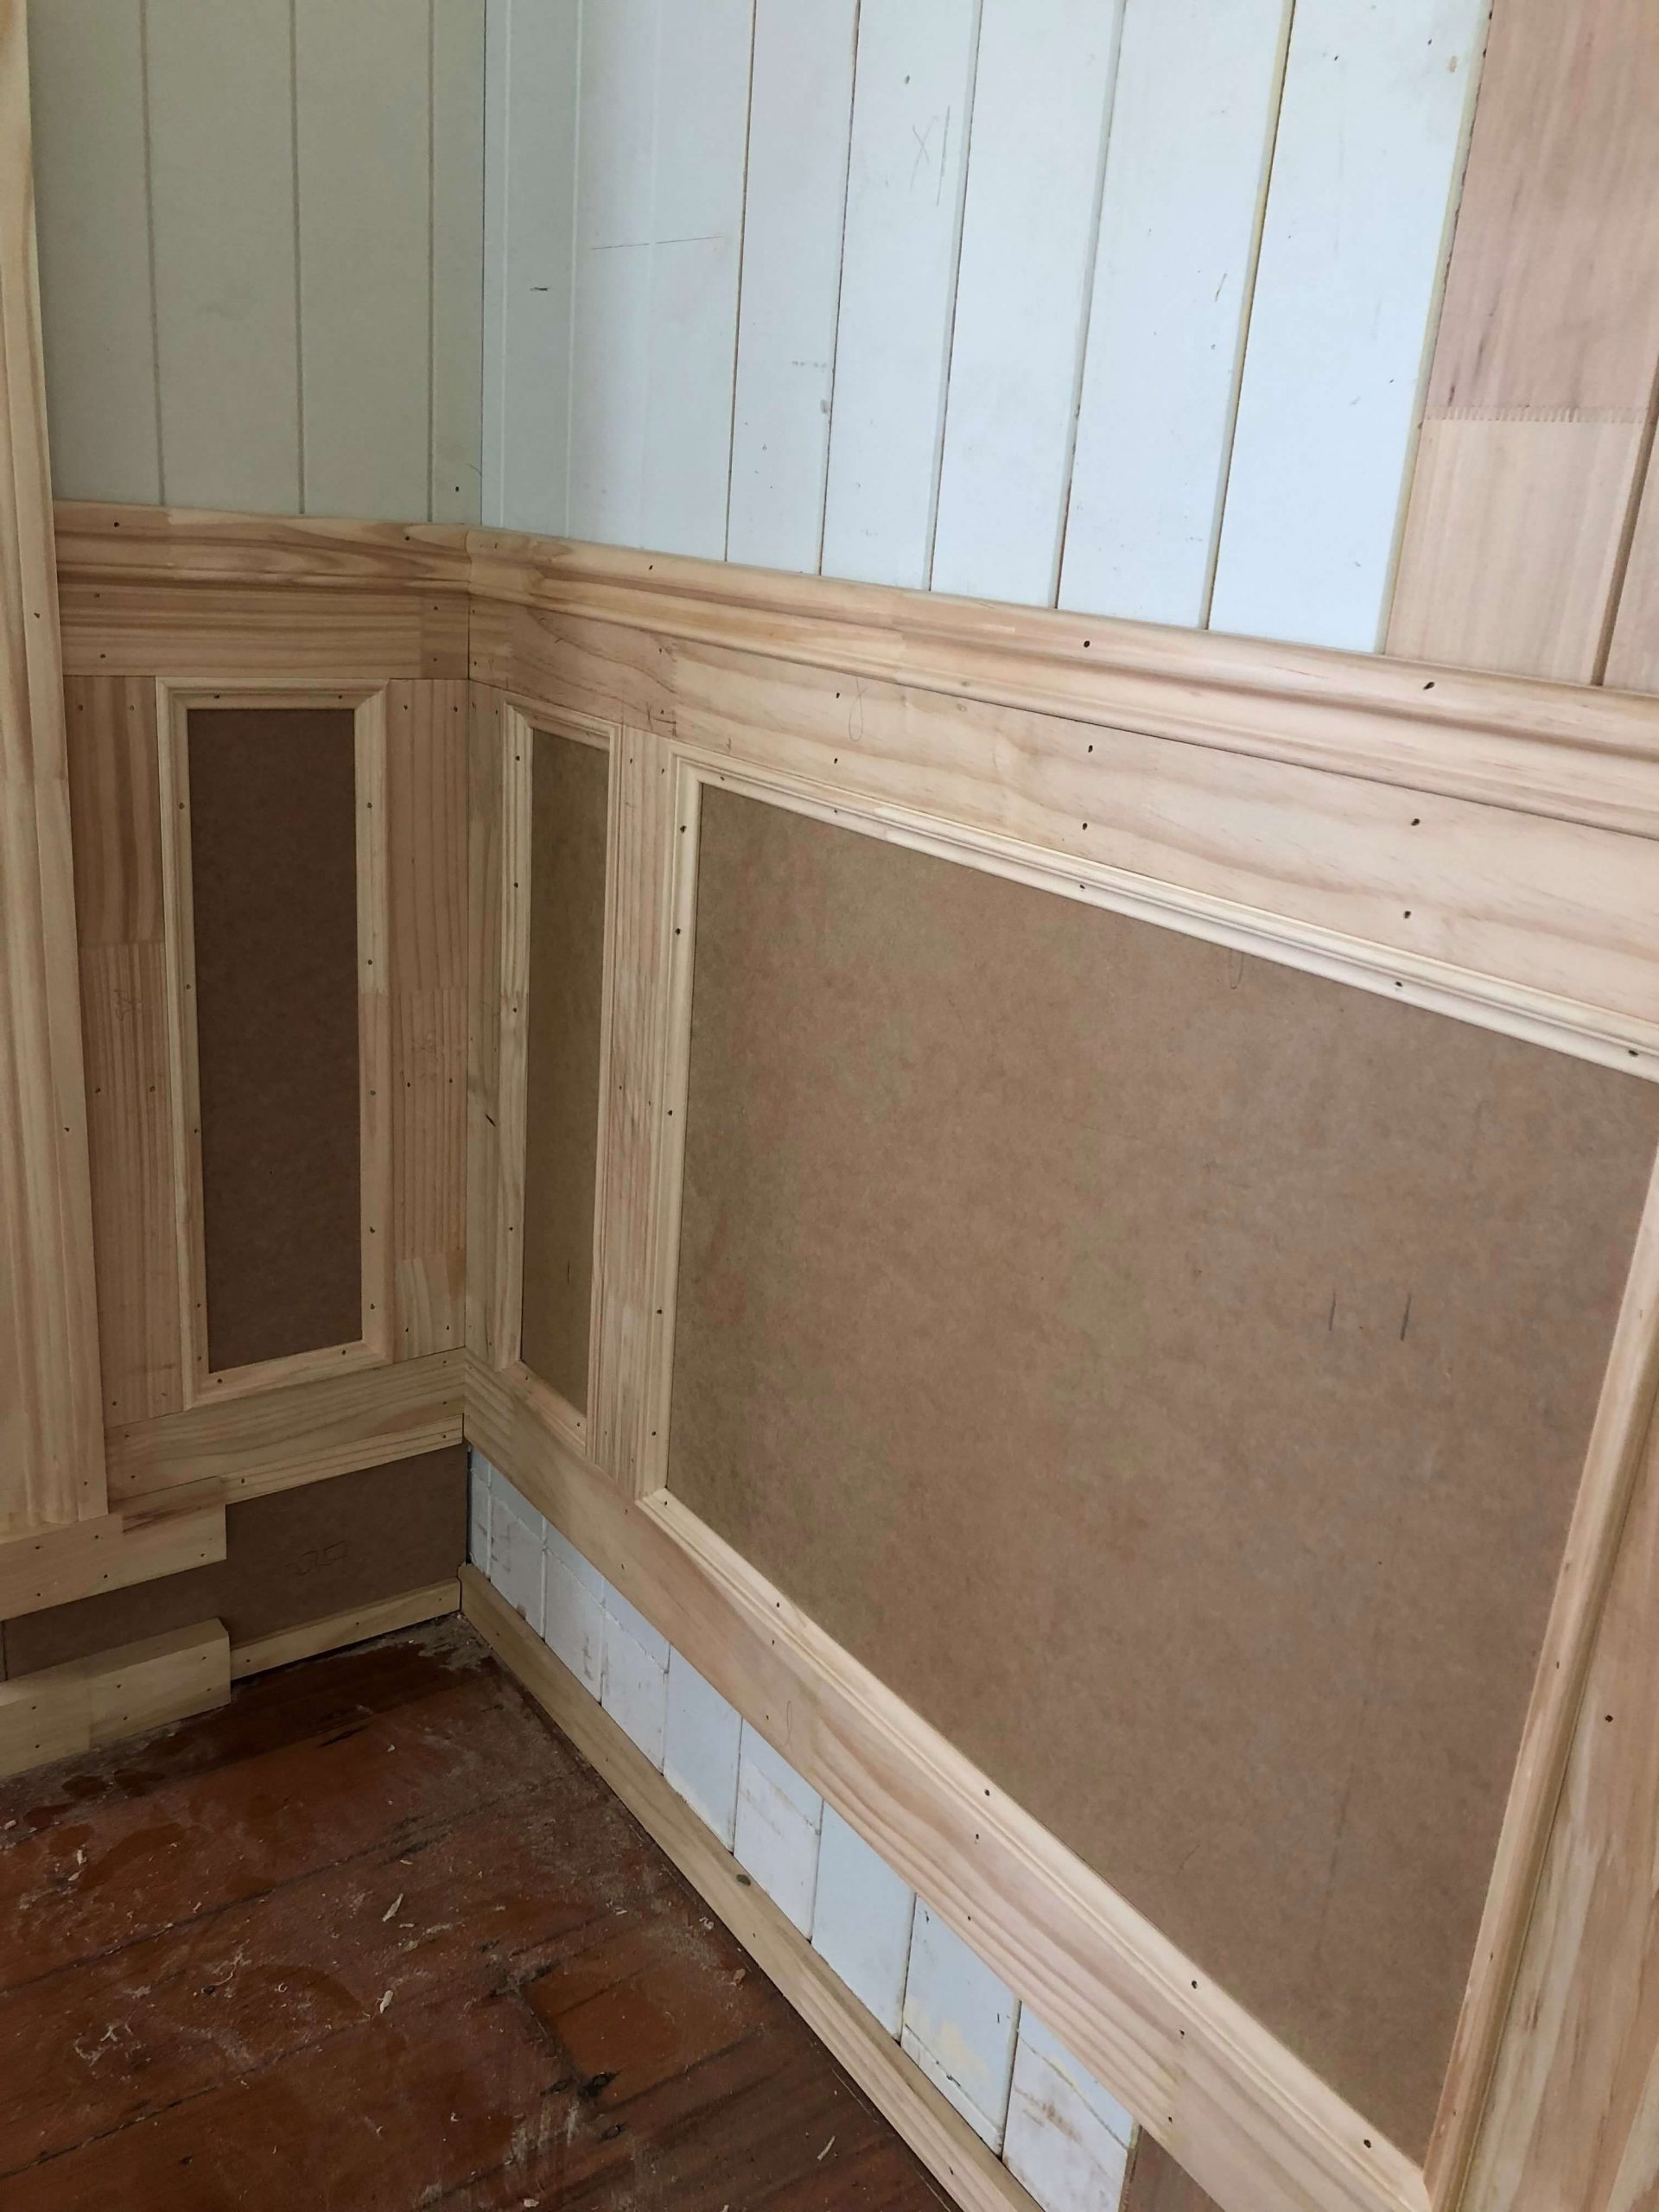 What Is Wainscoting Panels? | Intrim Moulding pertaining to Wainscoting Vs Board And Batten